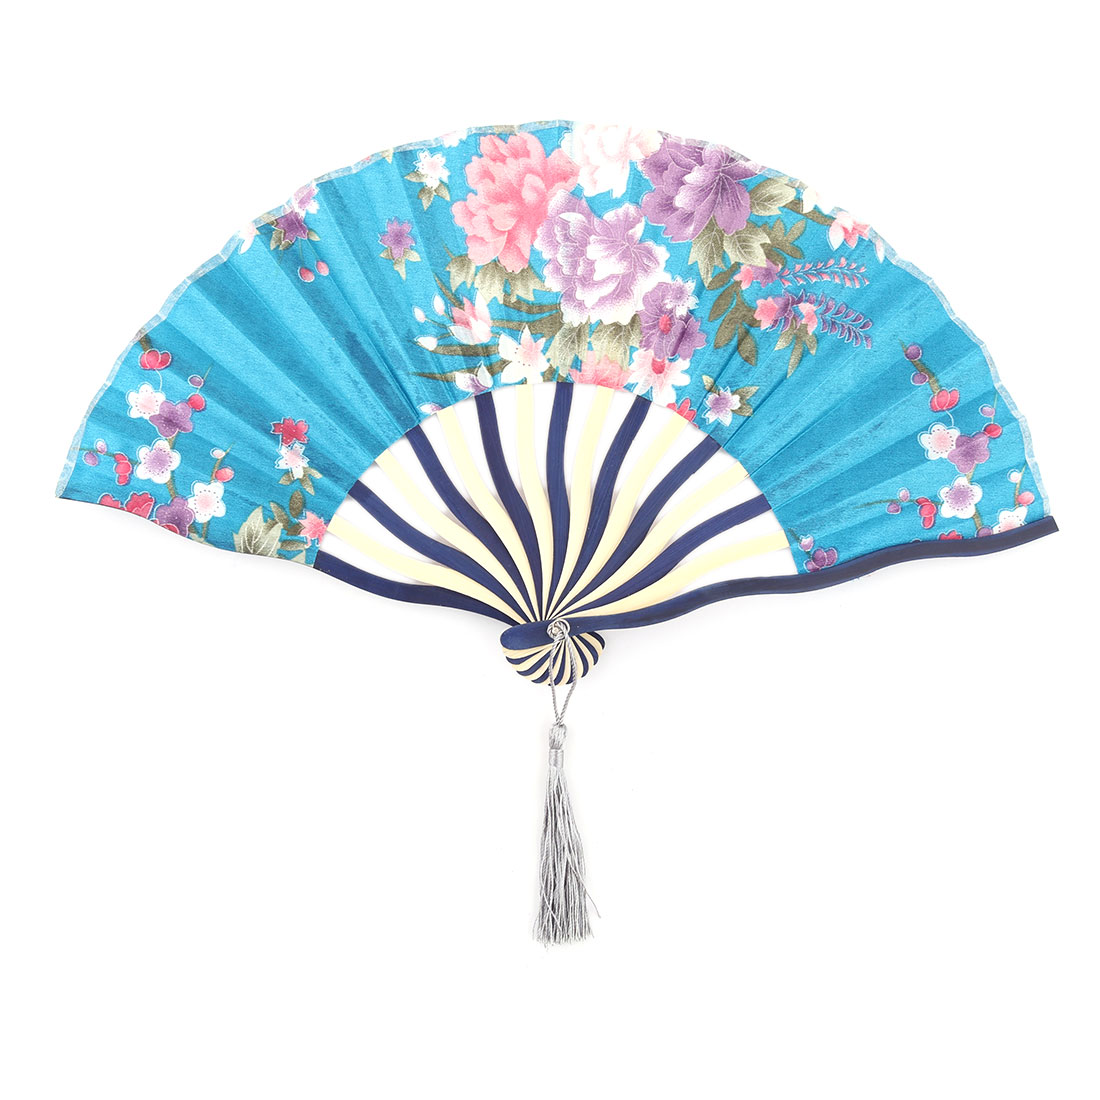 Dancing Bamboo Frame Flower Print Chinese Craft Cool Foldable Hand Fan Teal Blue